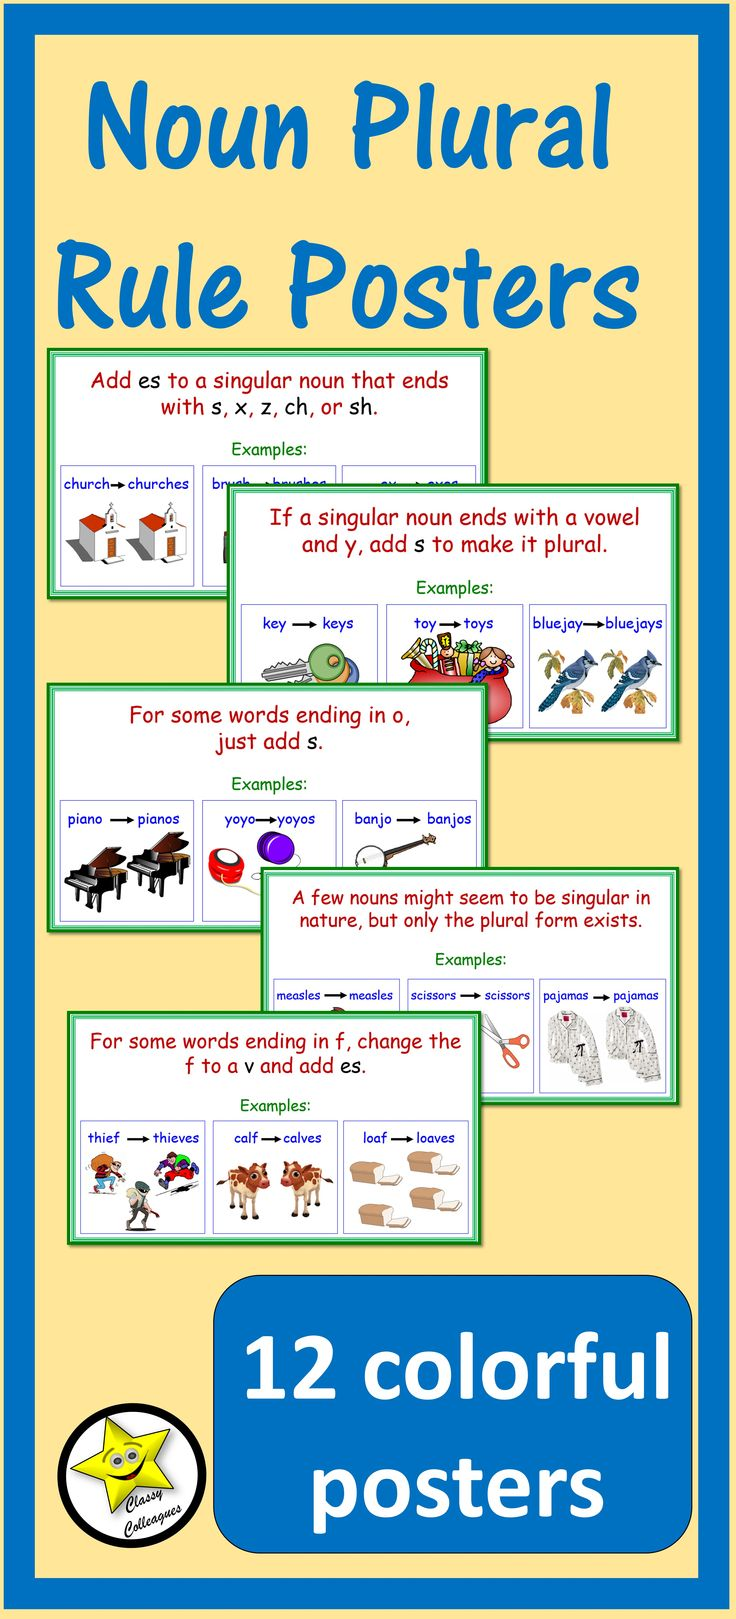 Workbooks making words plural worksheets : Best 25+ Plural examples ideas on Pinterest | Examples of plural ...